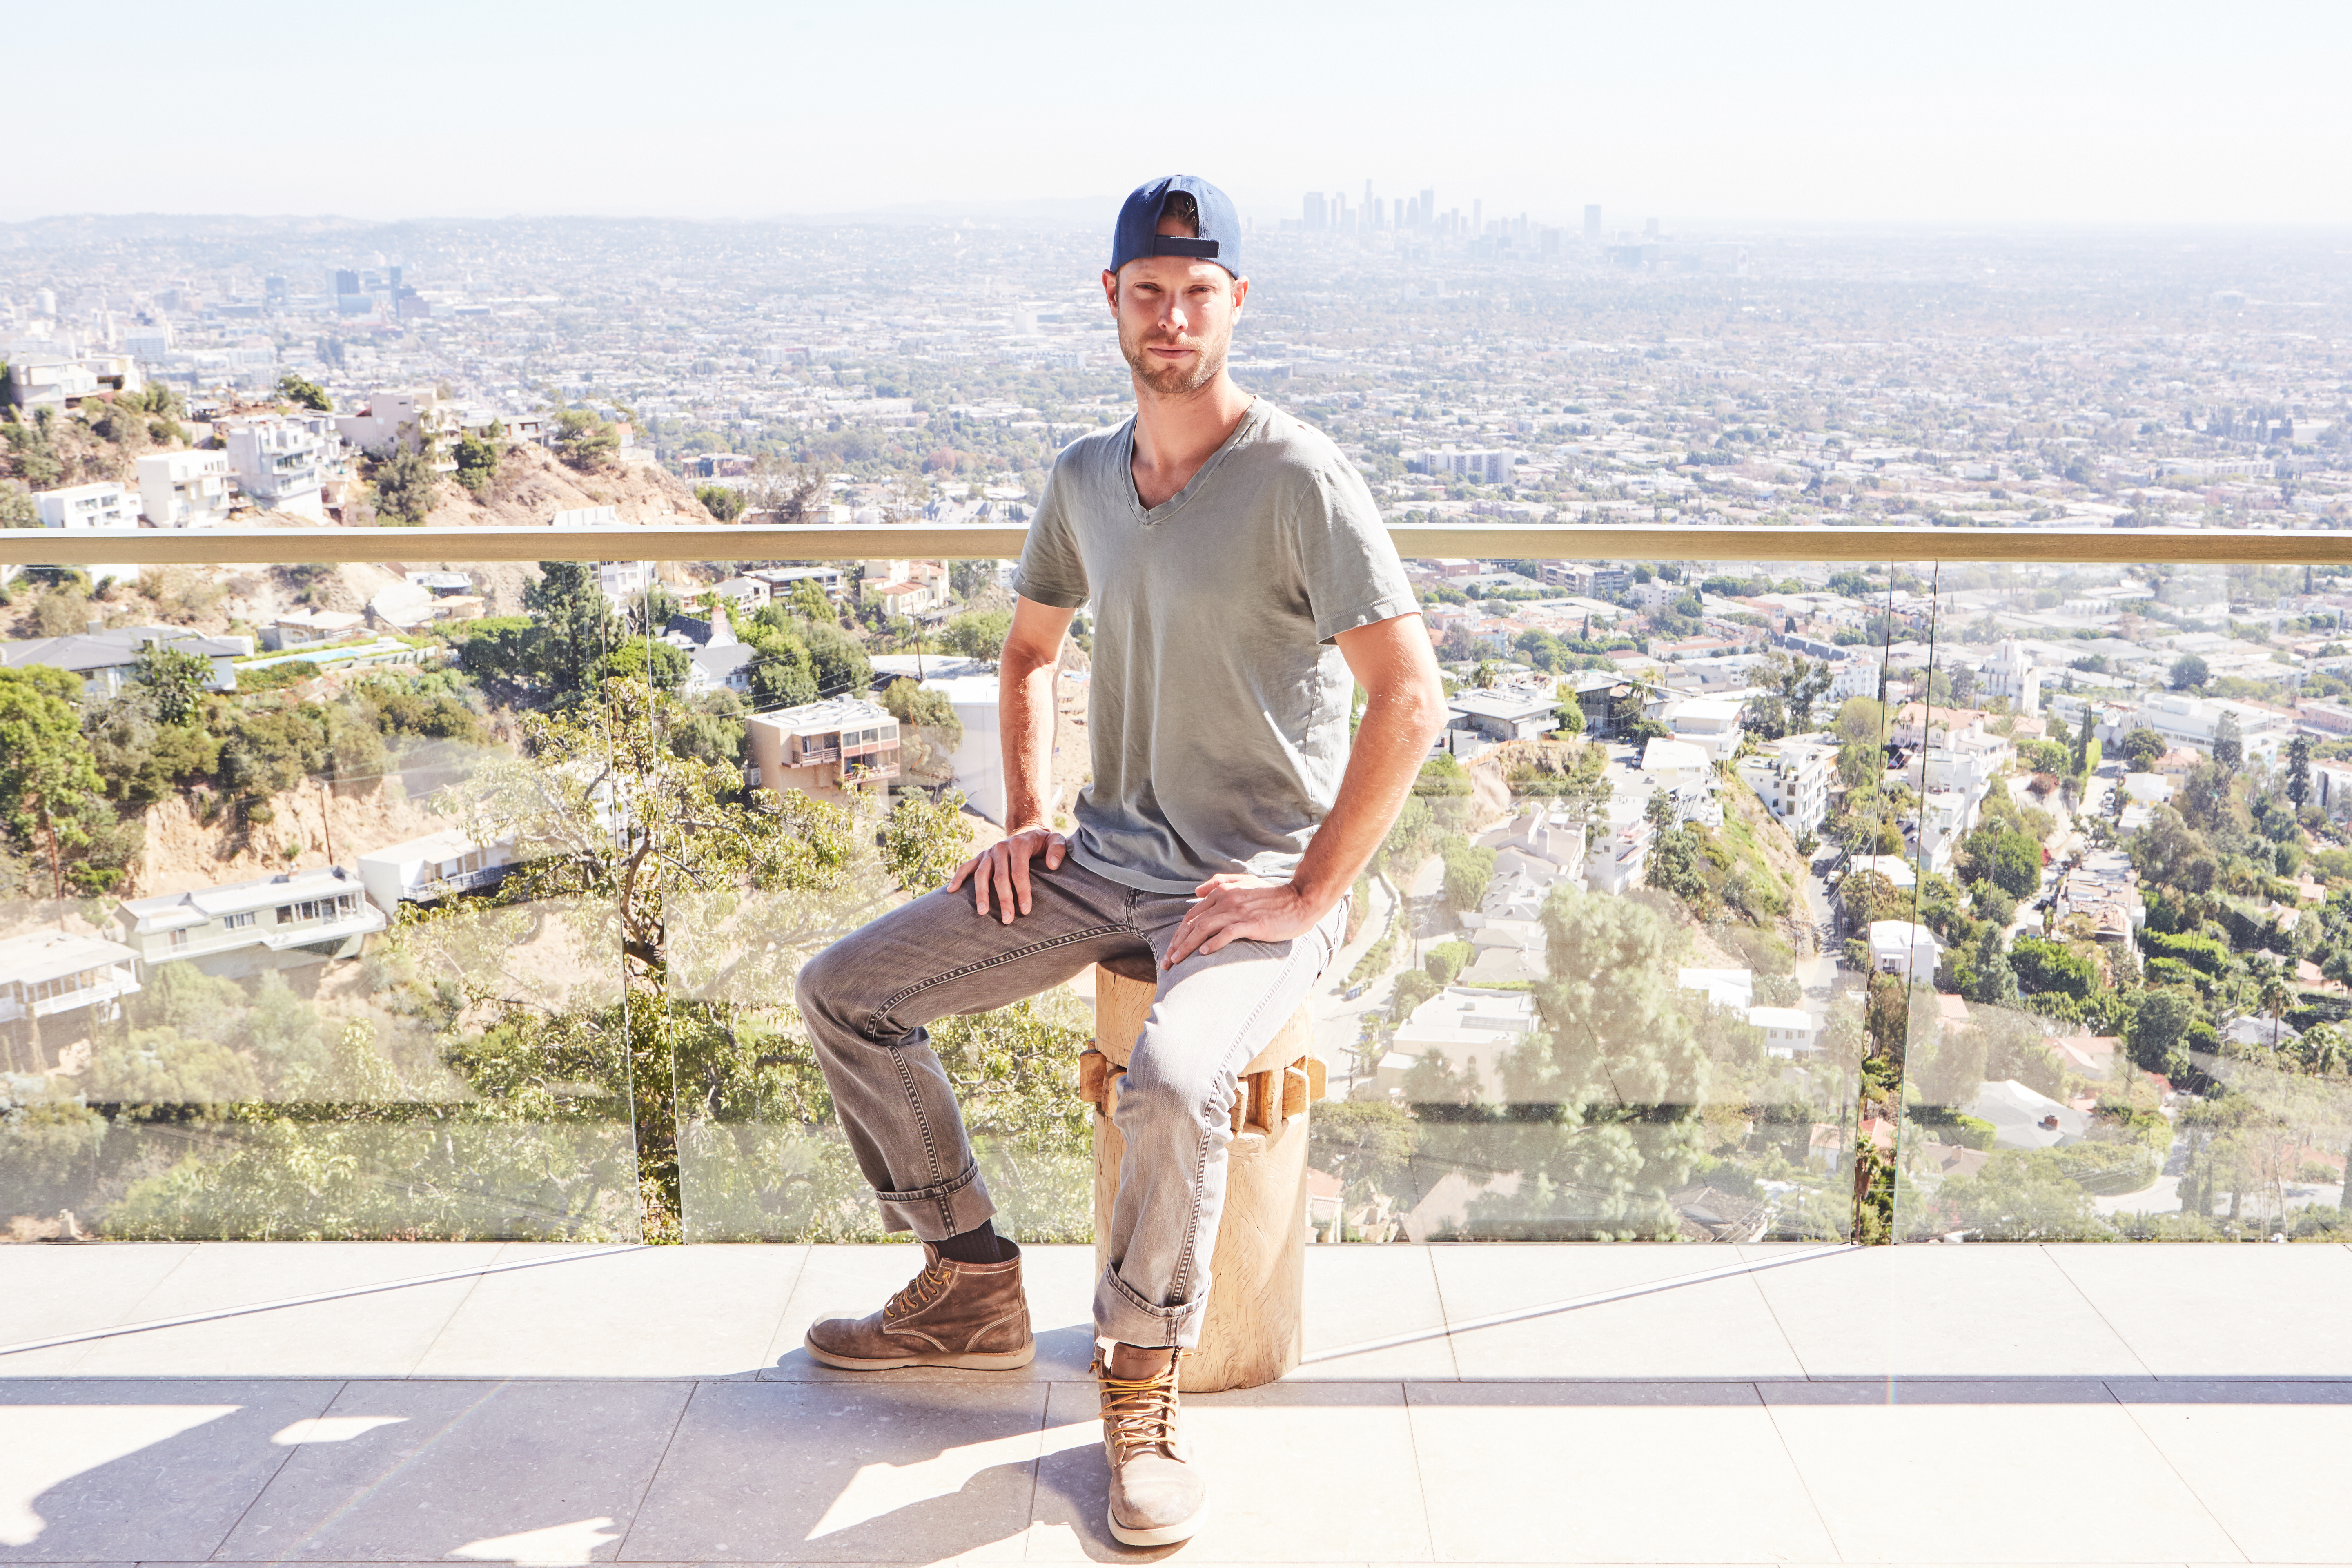 Kyle Fishburn on the deck of a home that he designed in Los Angeles.